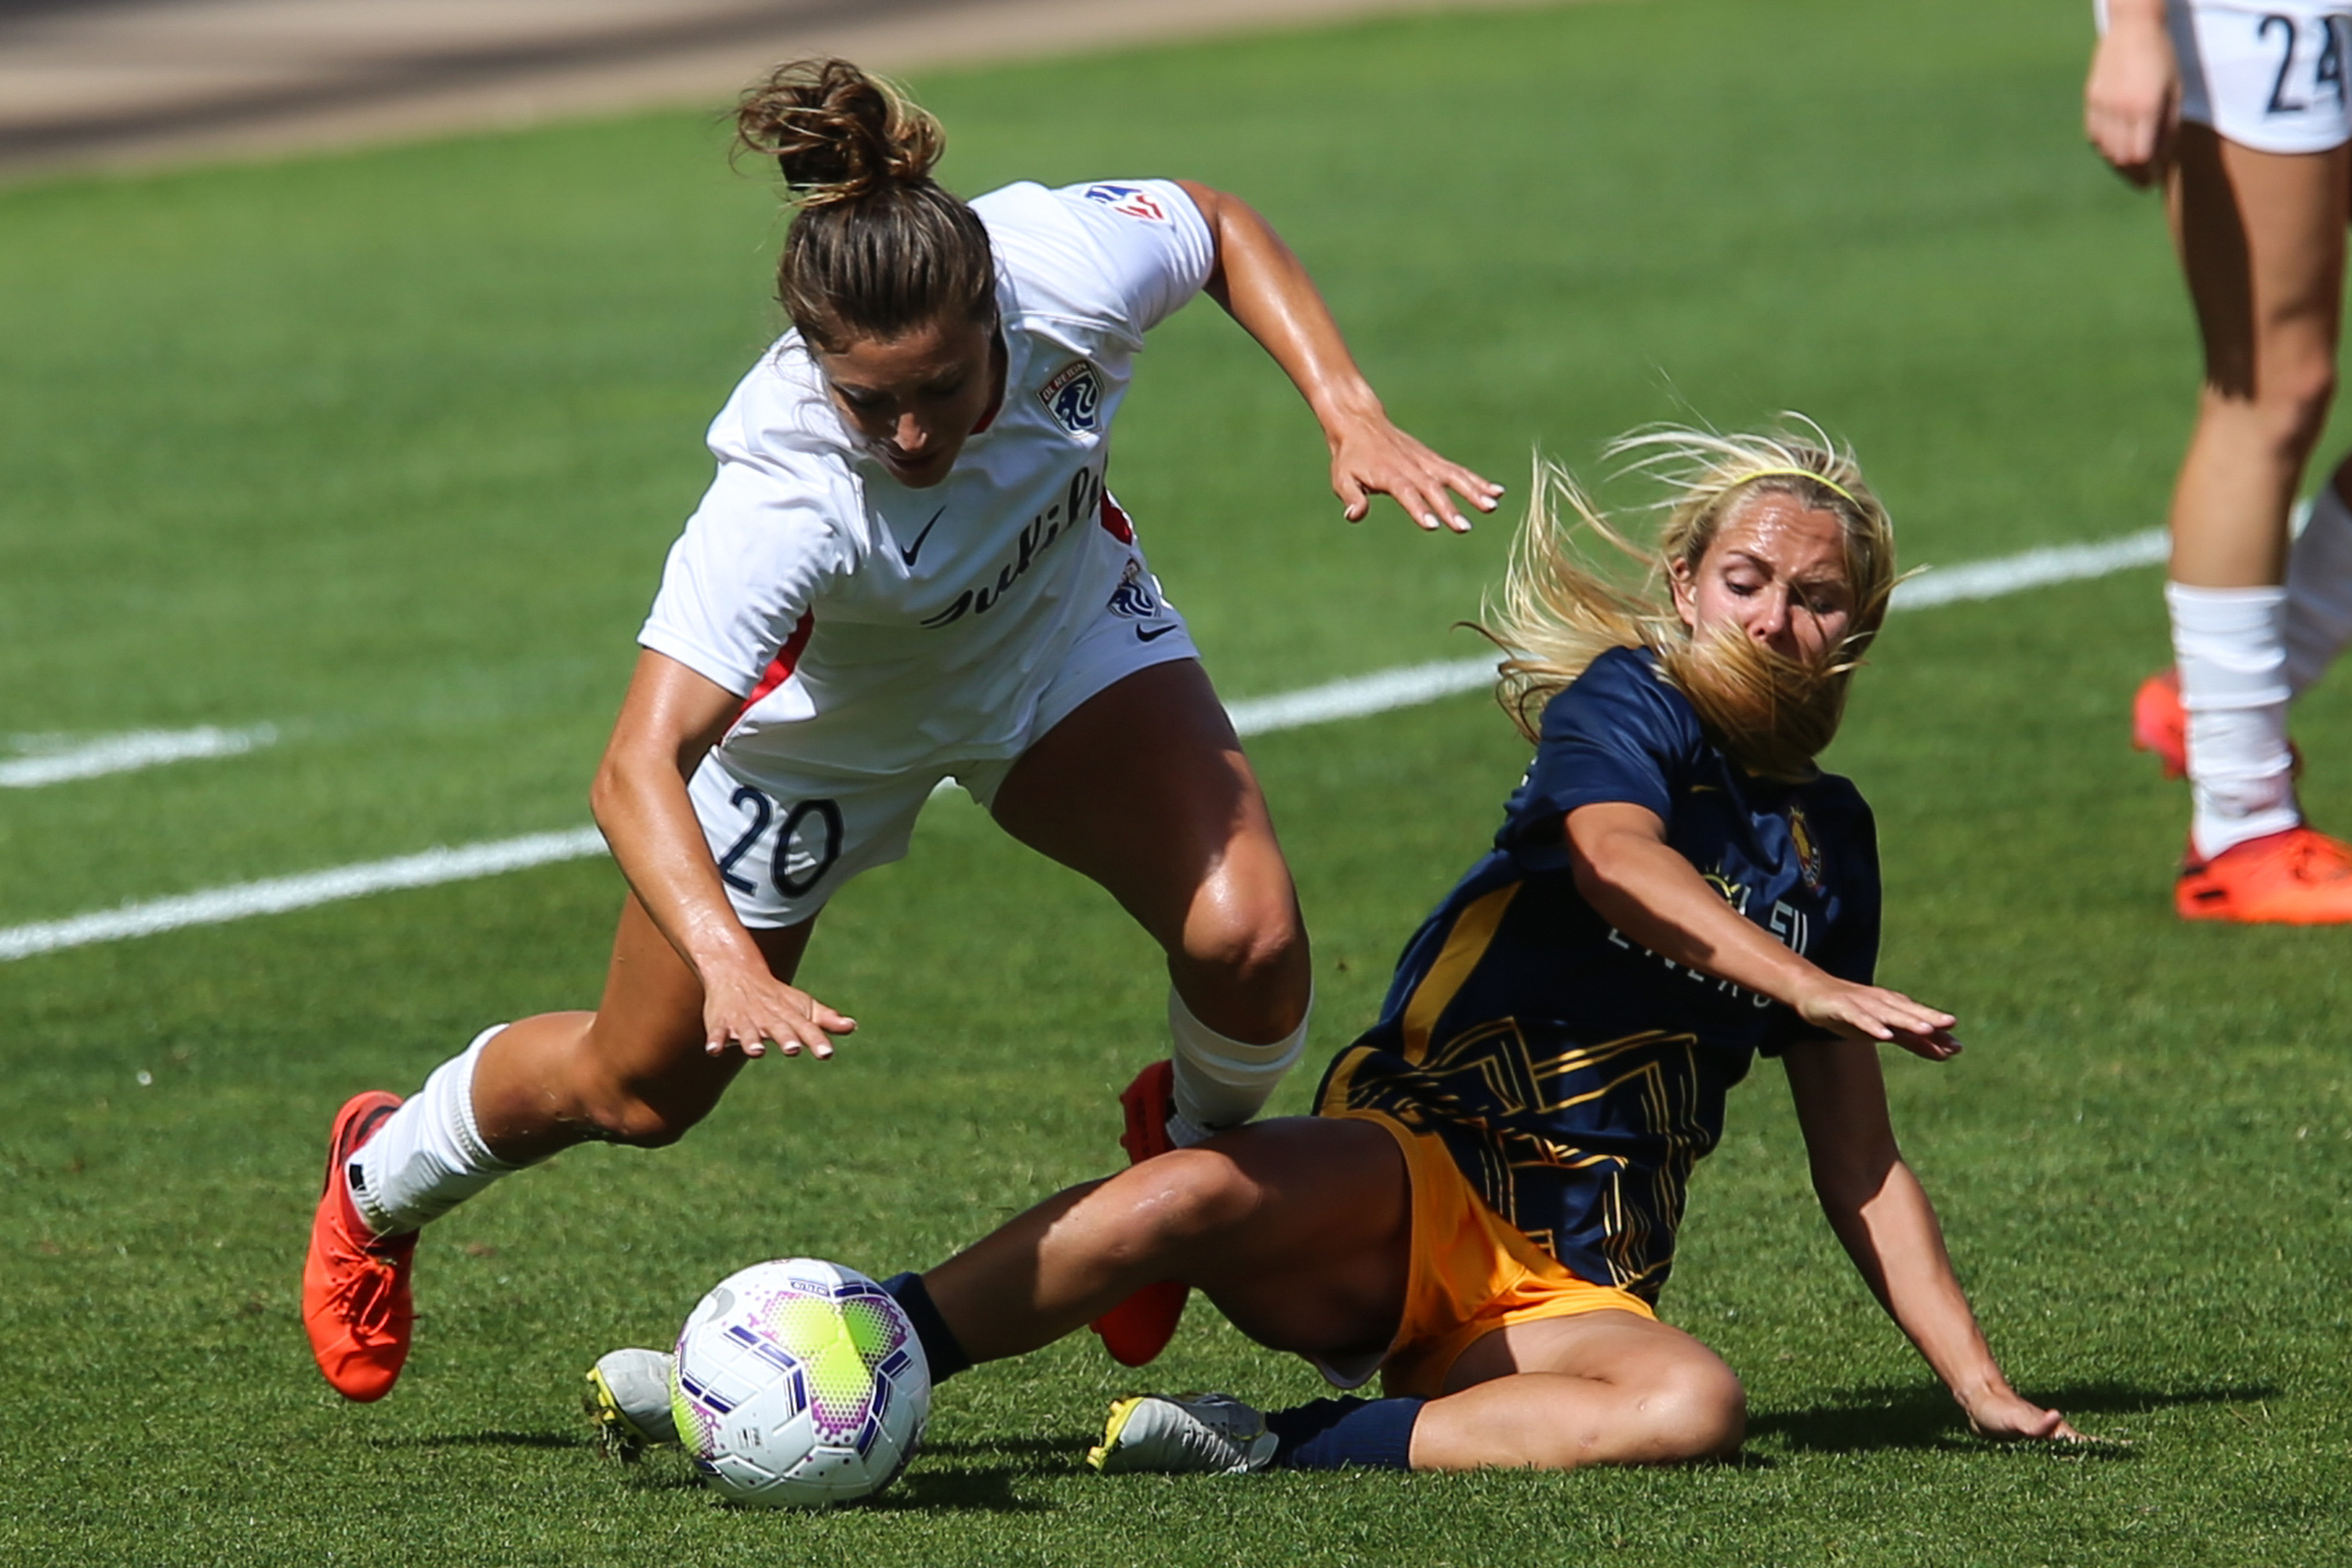 Utah Royals FC forward Brittany Ratcliffe (25) slide tackles the ball against OL Reign FC midfielder Rumi Utsugi (20) during a NWSL soccer game at Rio Tinto Stadium in Sandy on Saturday, Sept. 26, 2020.